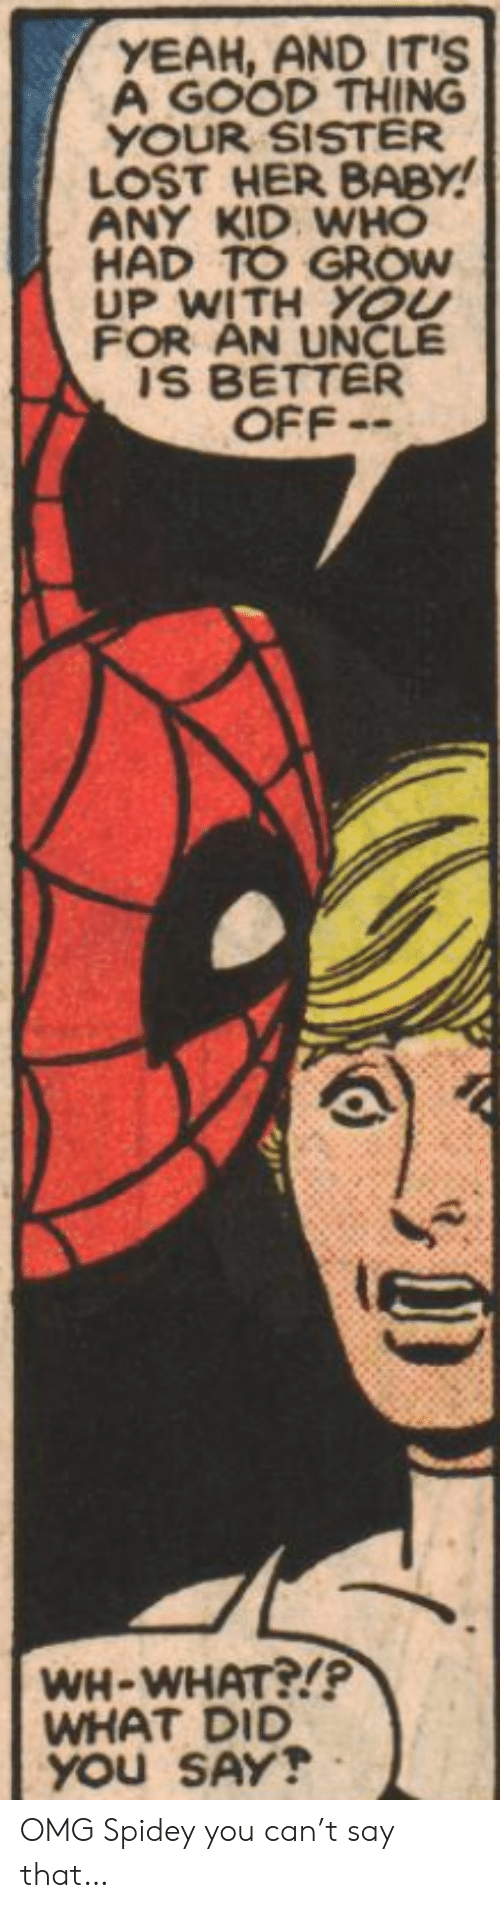 did-you-say: YEAH, AND IT'S  A GOOD THING  YOUR SISTER  LOST HER BABY!  ANY KID WHO  HAD TO GROW  UP WITH YOU  FOR AN UNCLE  IS BETTER  OFF-  WH-WHAT?!P  WHAT DID  YOU SAY! OMG Spidey you can't say that…